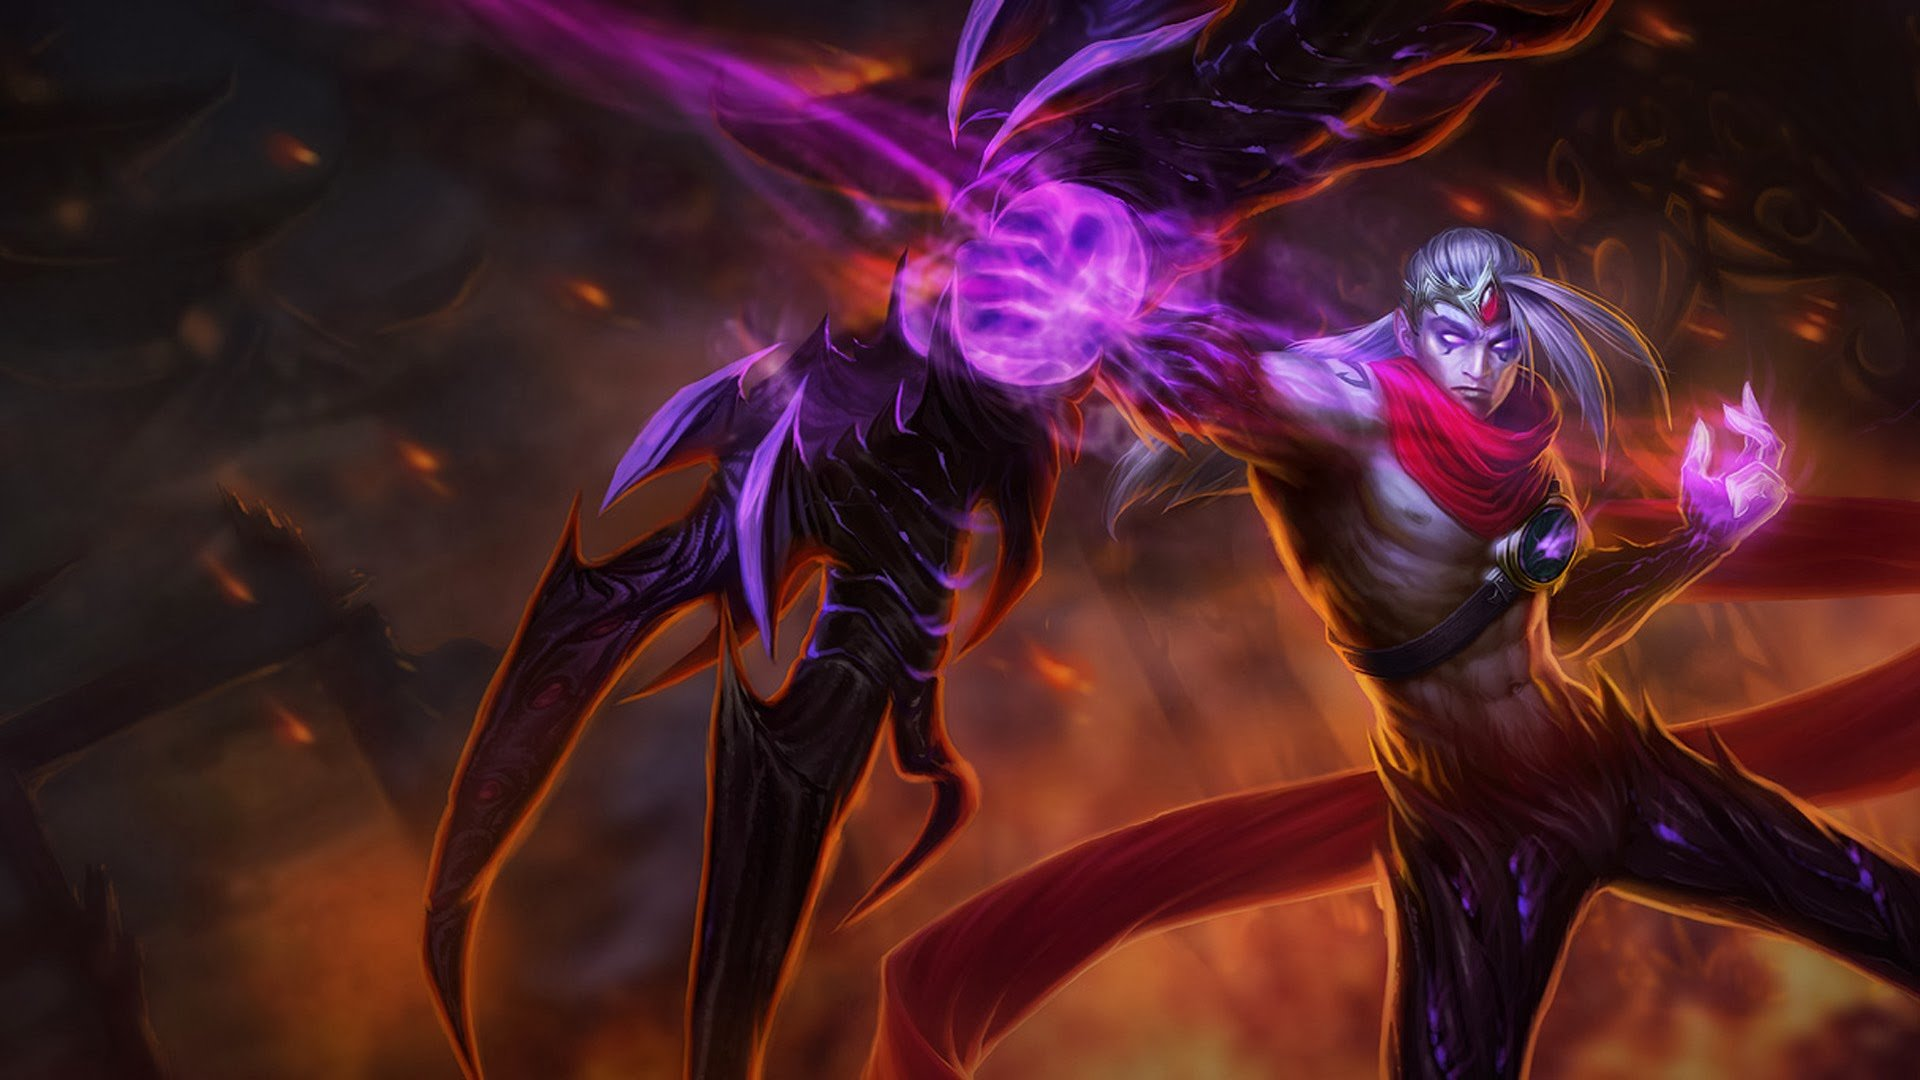 Free download Varus (League Of Legends) background ID:171707 full hd 1920x1080 for computer